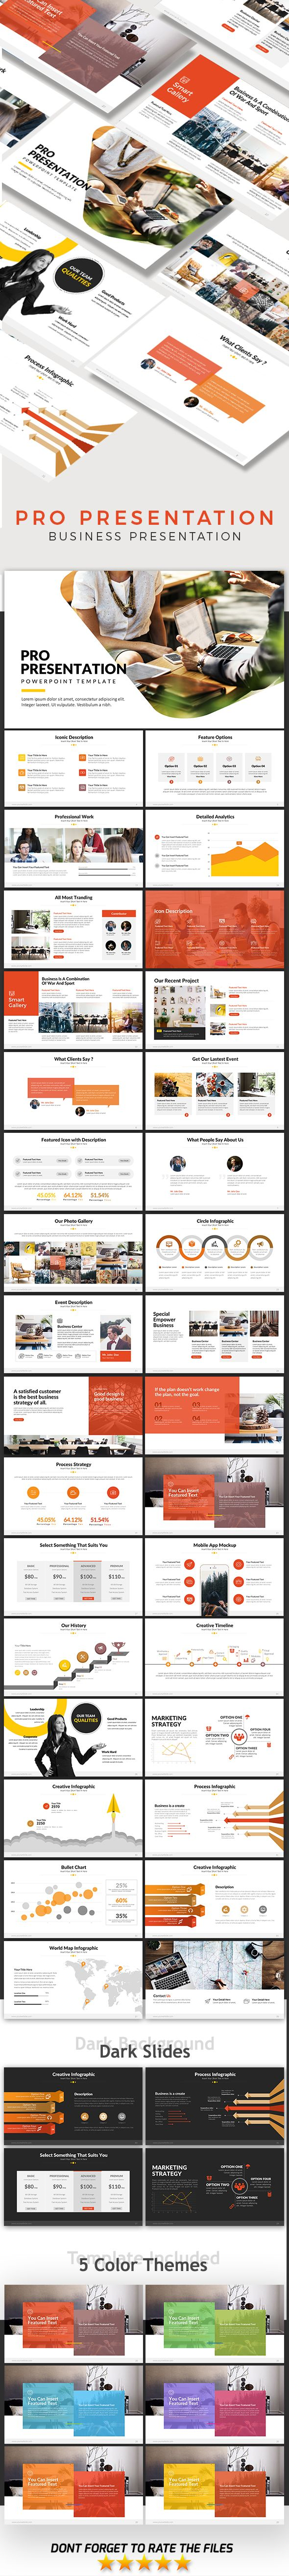 Pro Presentation - Powerpoint Template